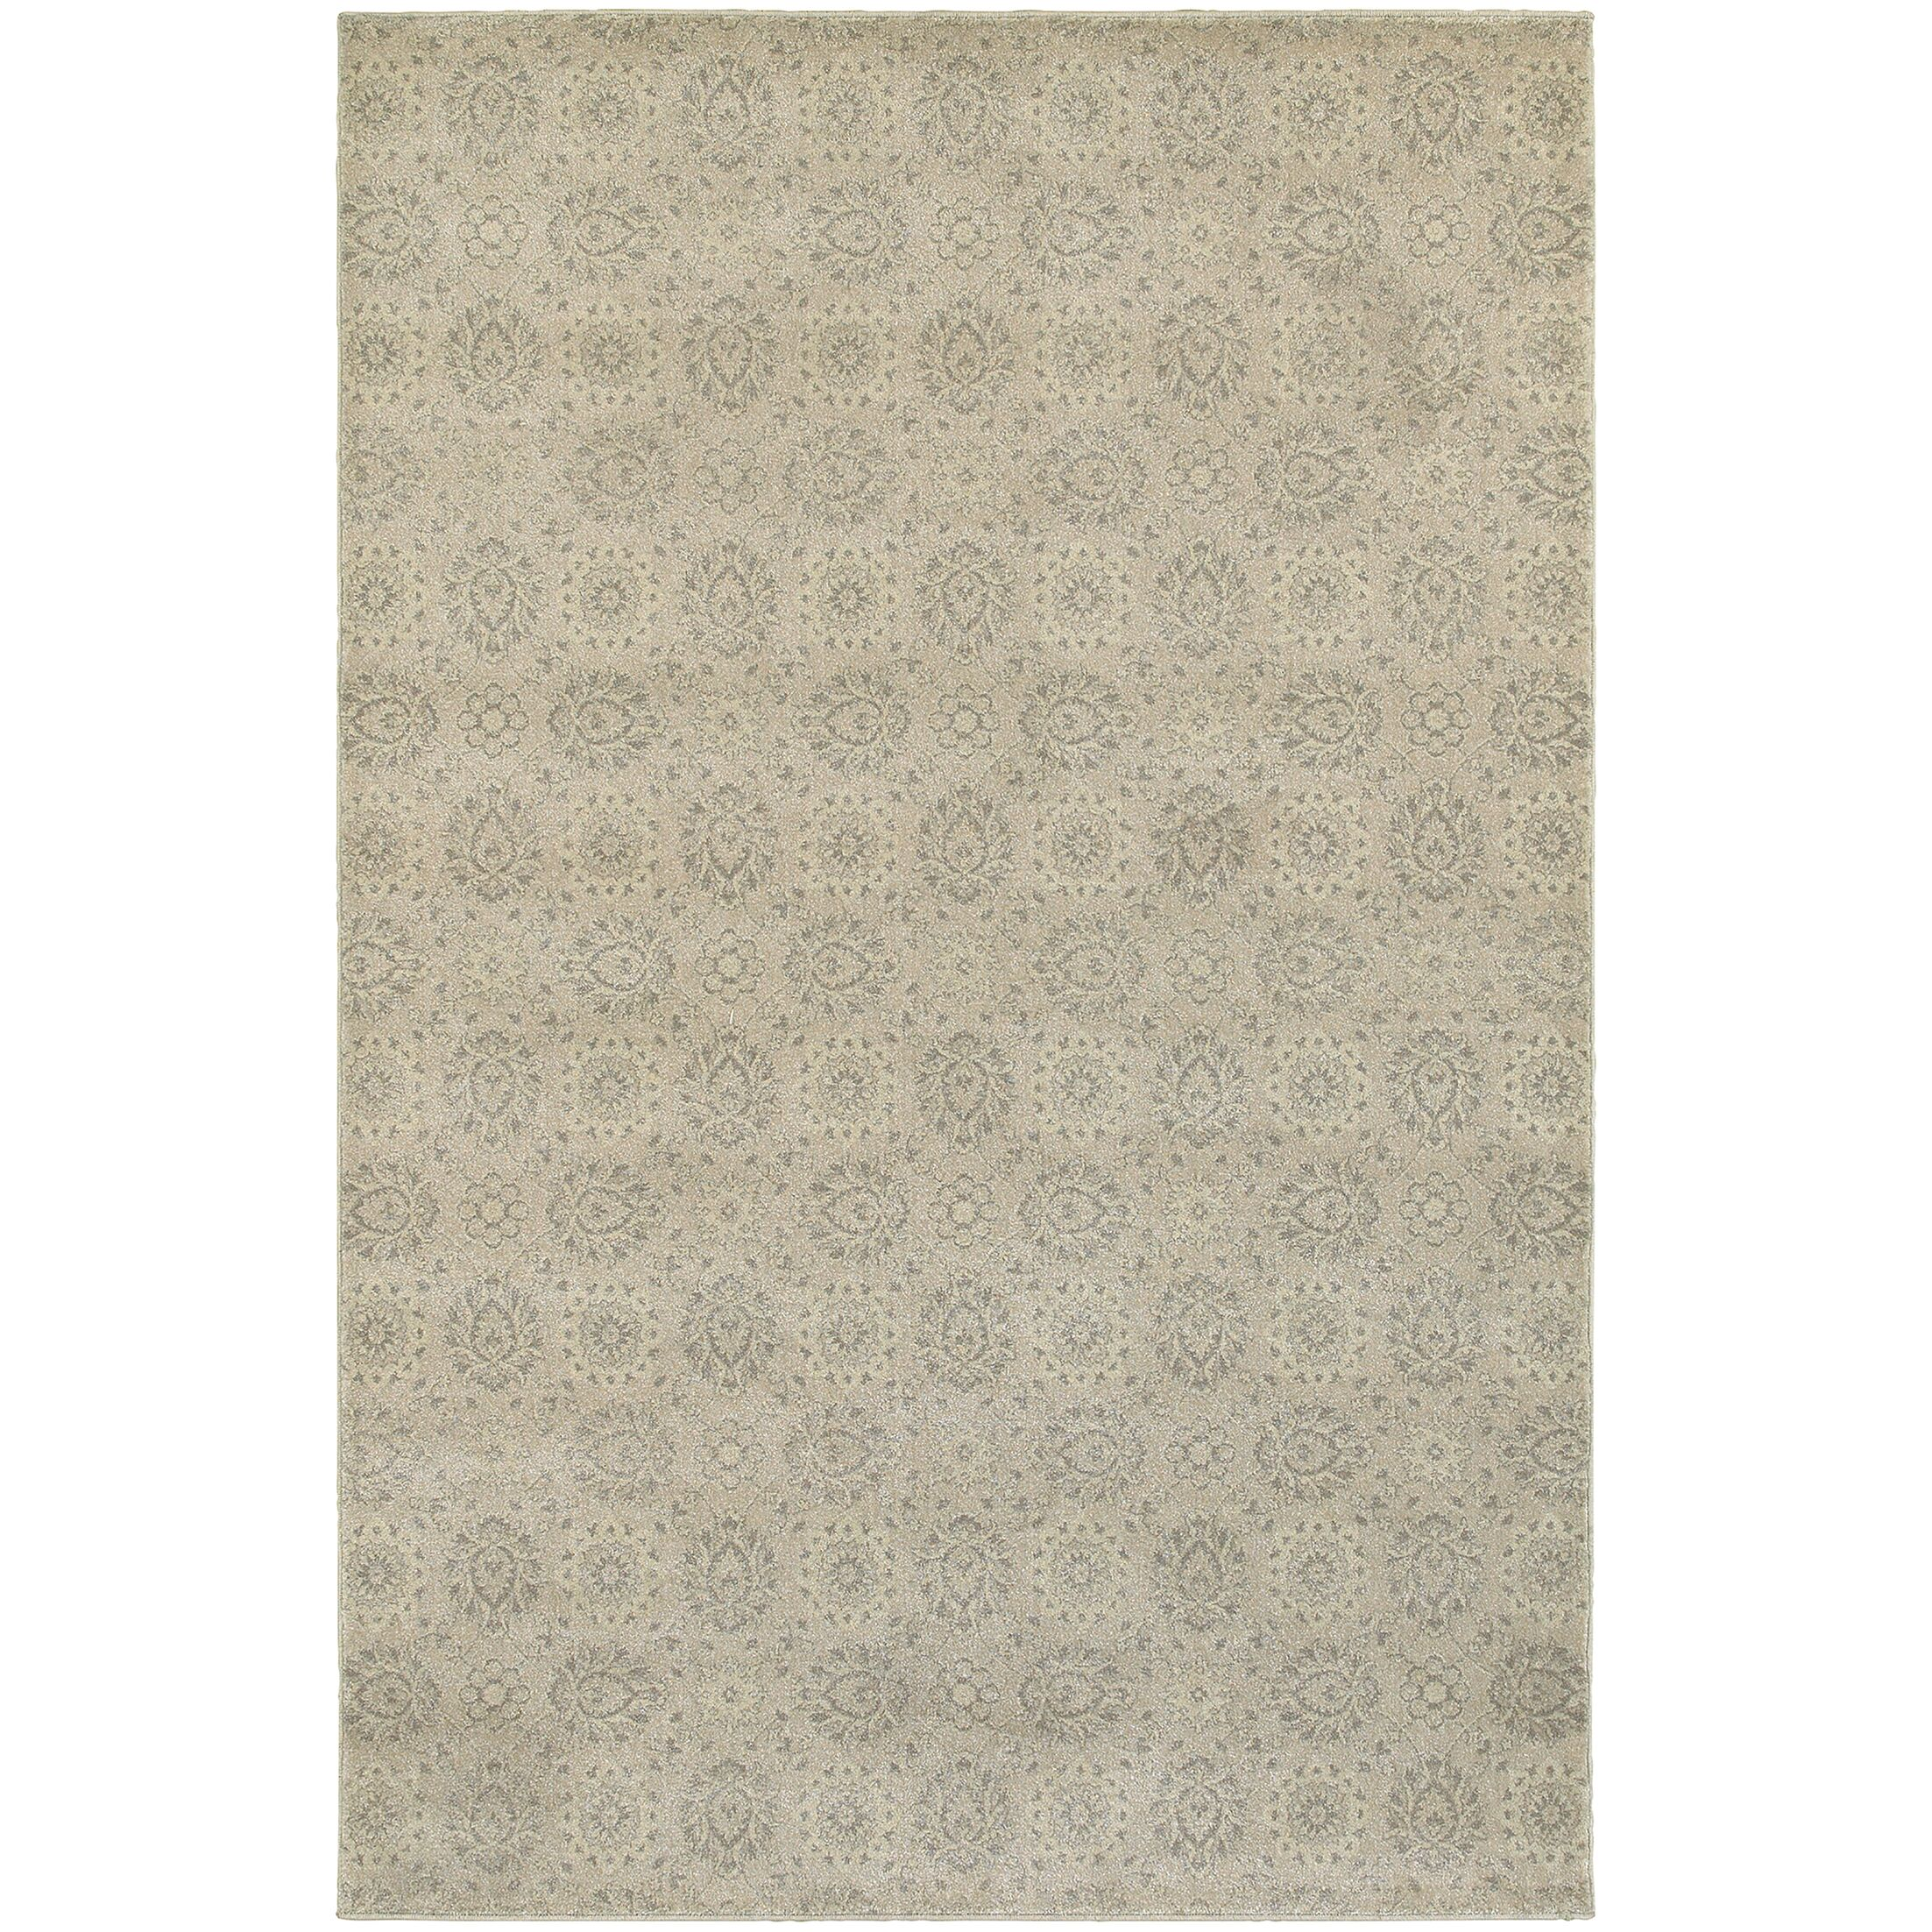 Cynthiana Beige/Ivory Area Rug Rug Size: Rectangle 7'10